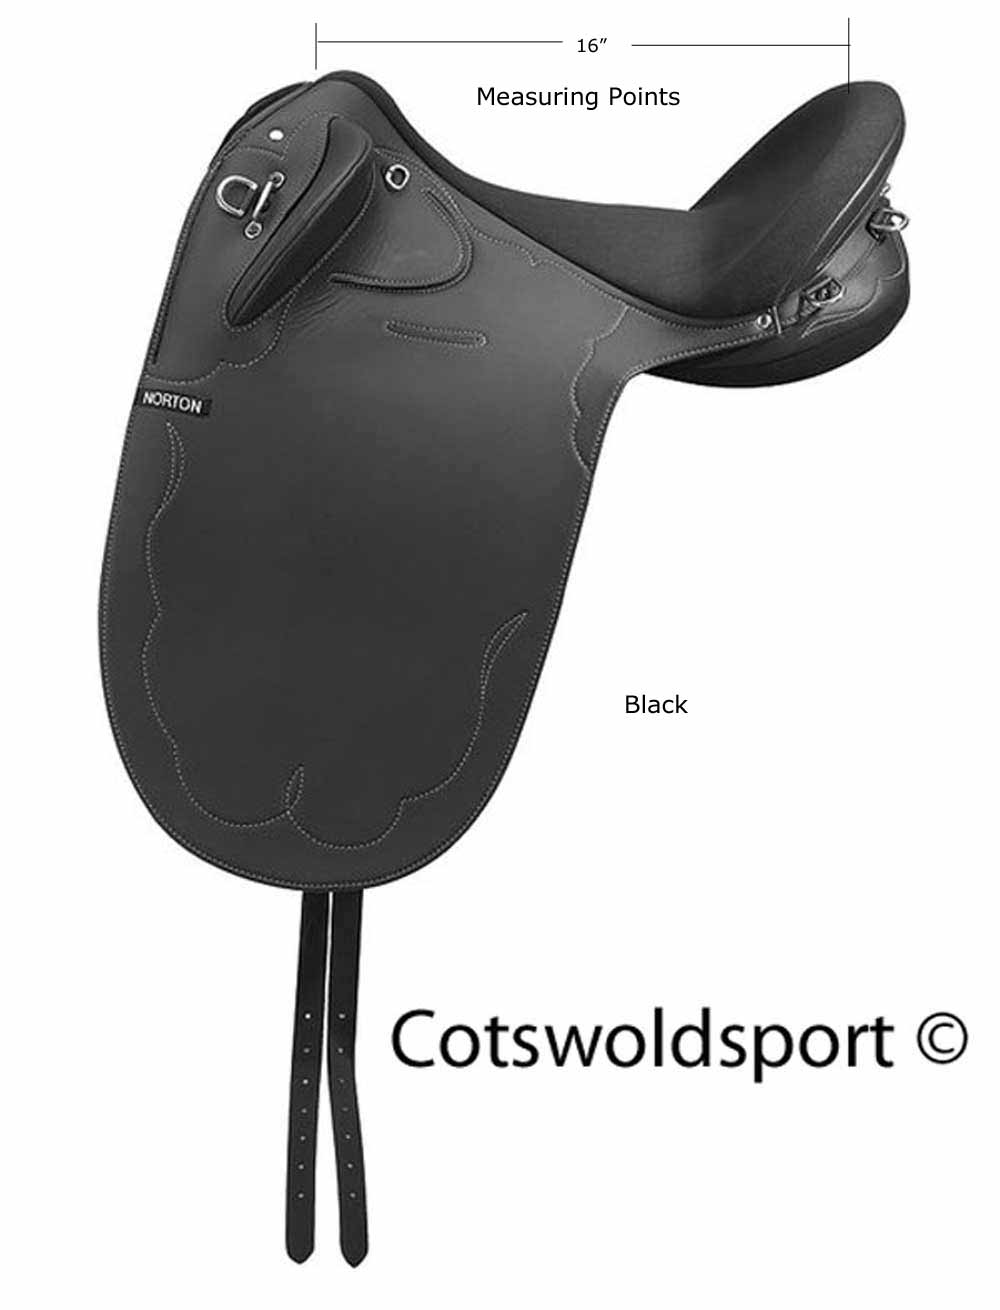 https://www.cotswoldsport.co.uk/Main-Shop/pics/e/ek/StockSad_BLK1.jpg